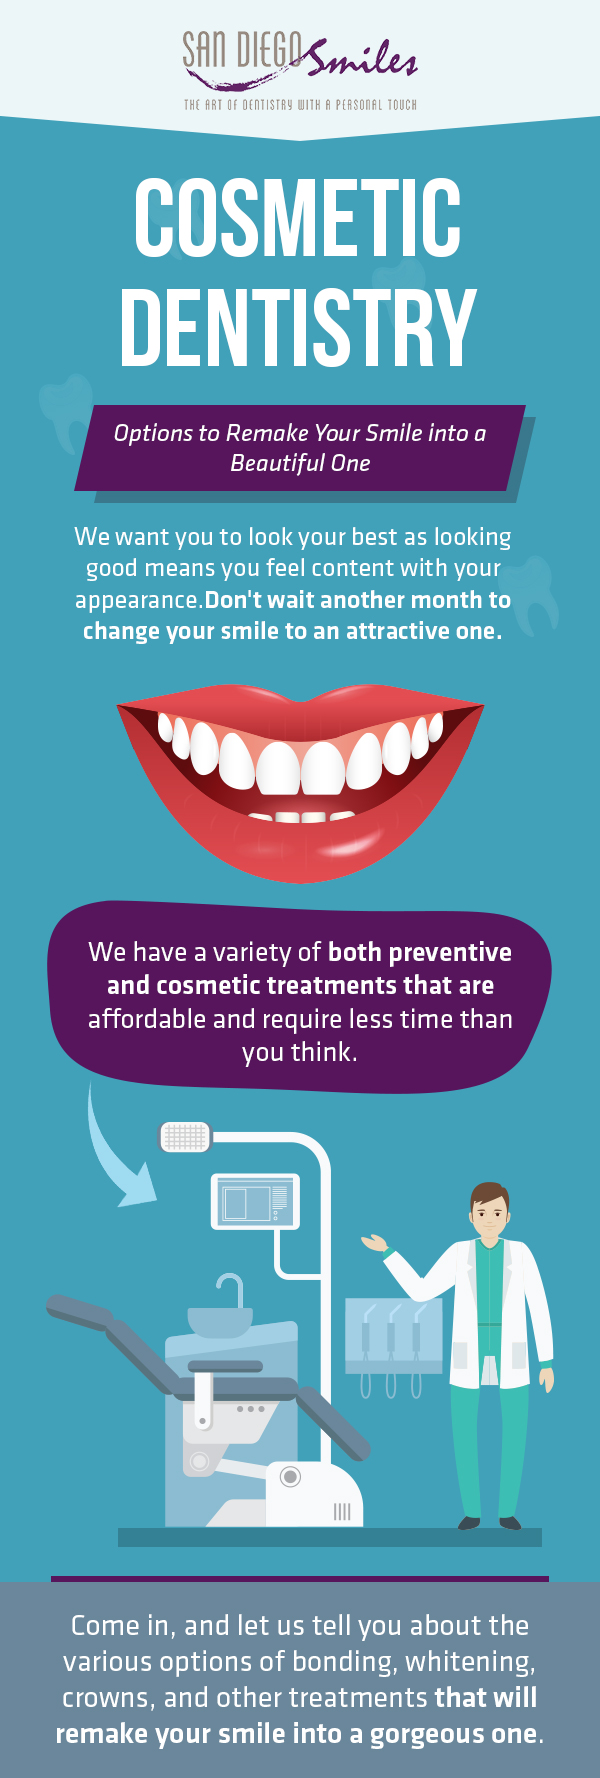 Remake Your Smile into New One with Cosmetic Dentistry from San Diego Smiles